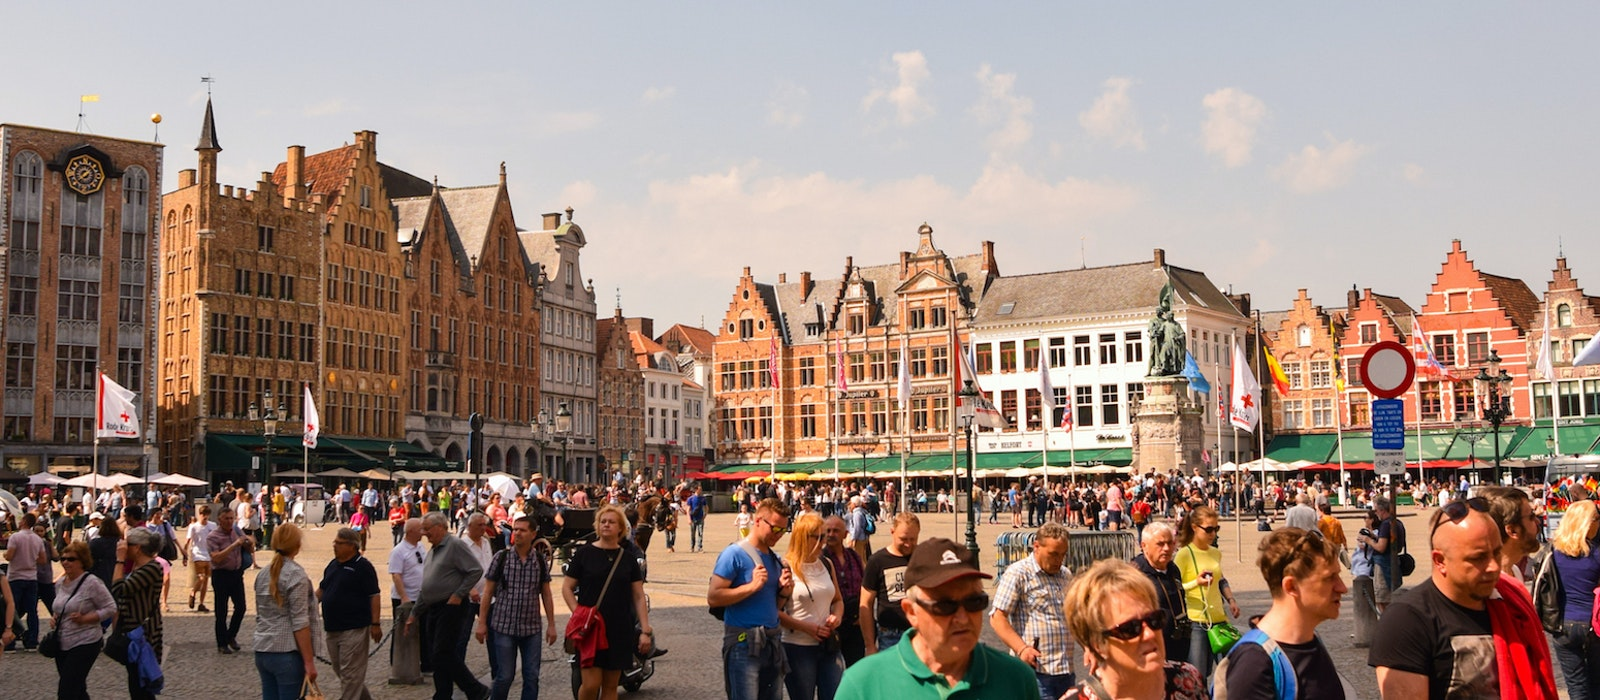 In 2018, a record 8.3 million tourists visited the medieval city of Bruges, Belgium.